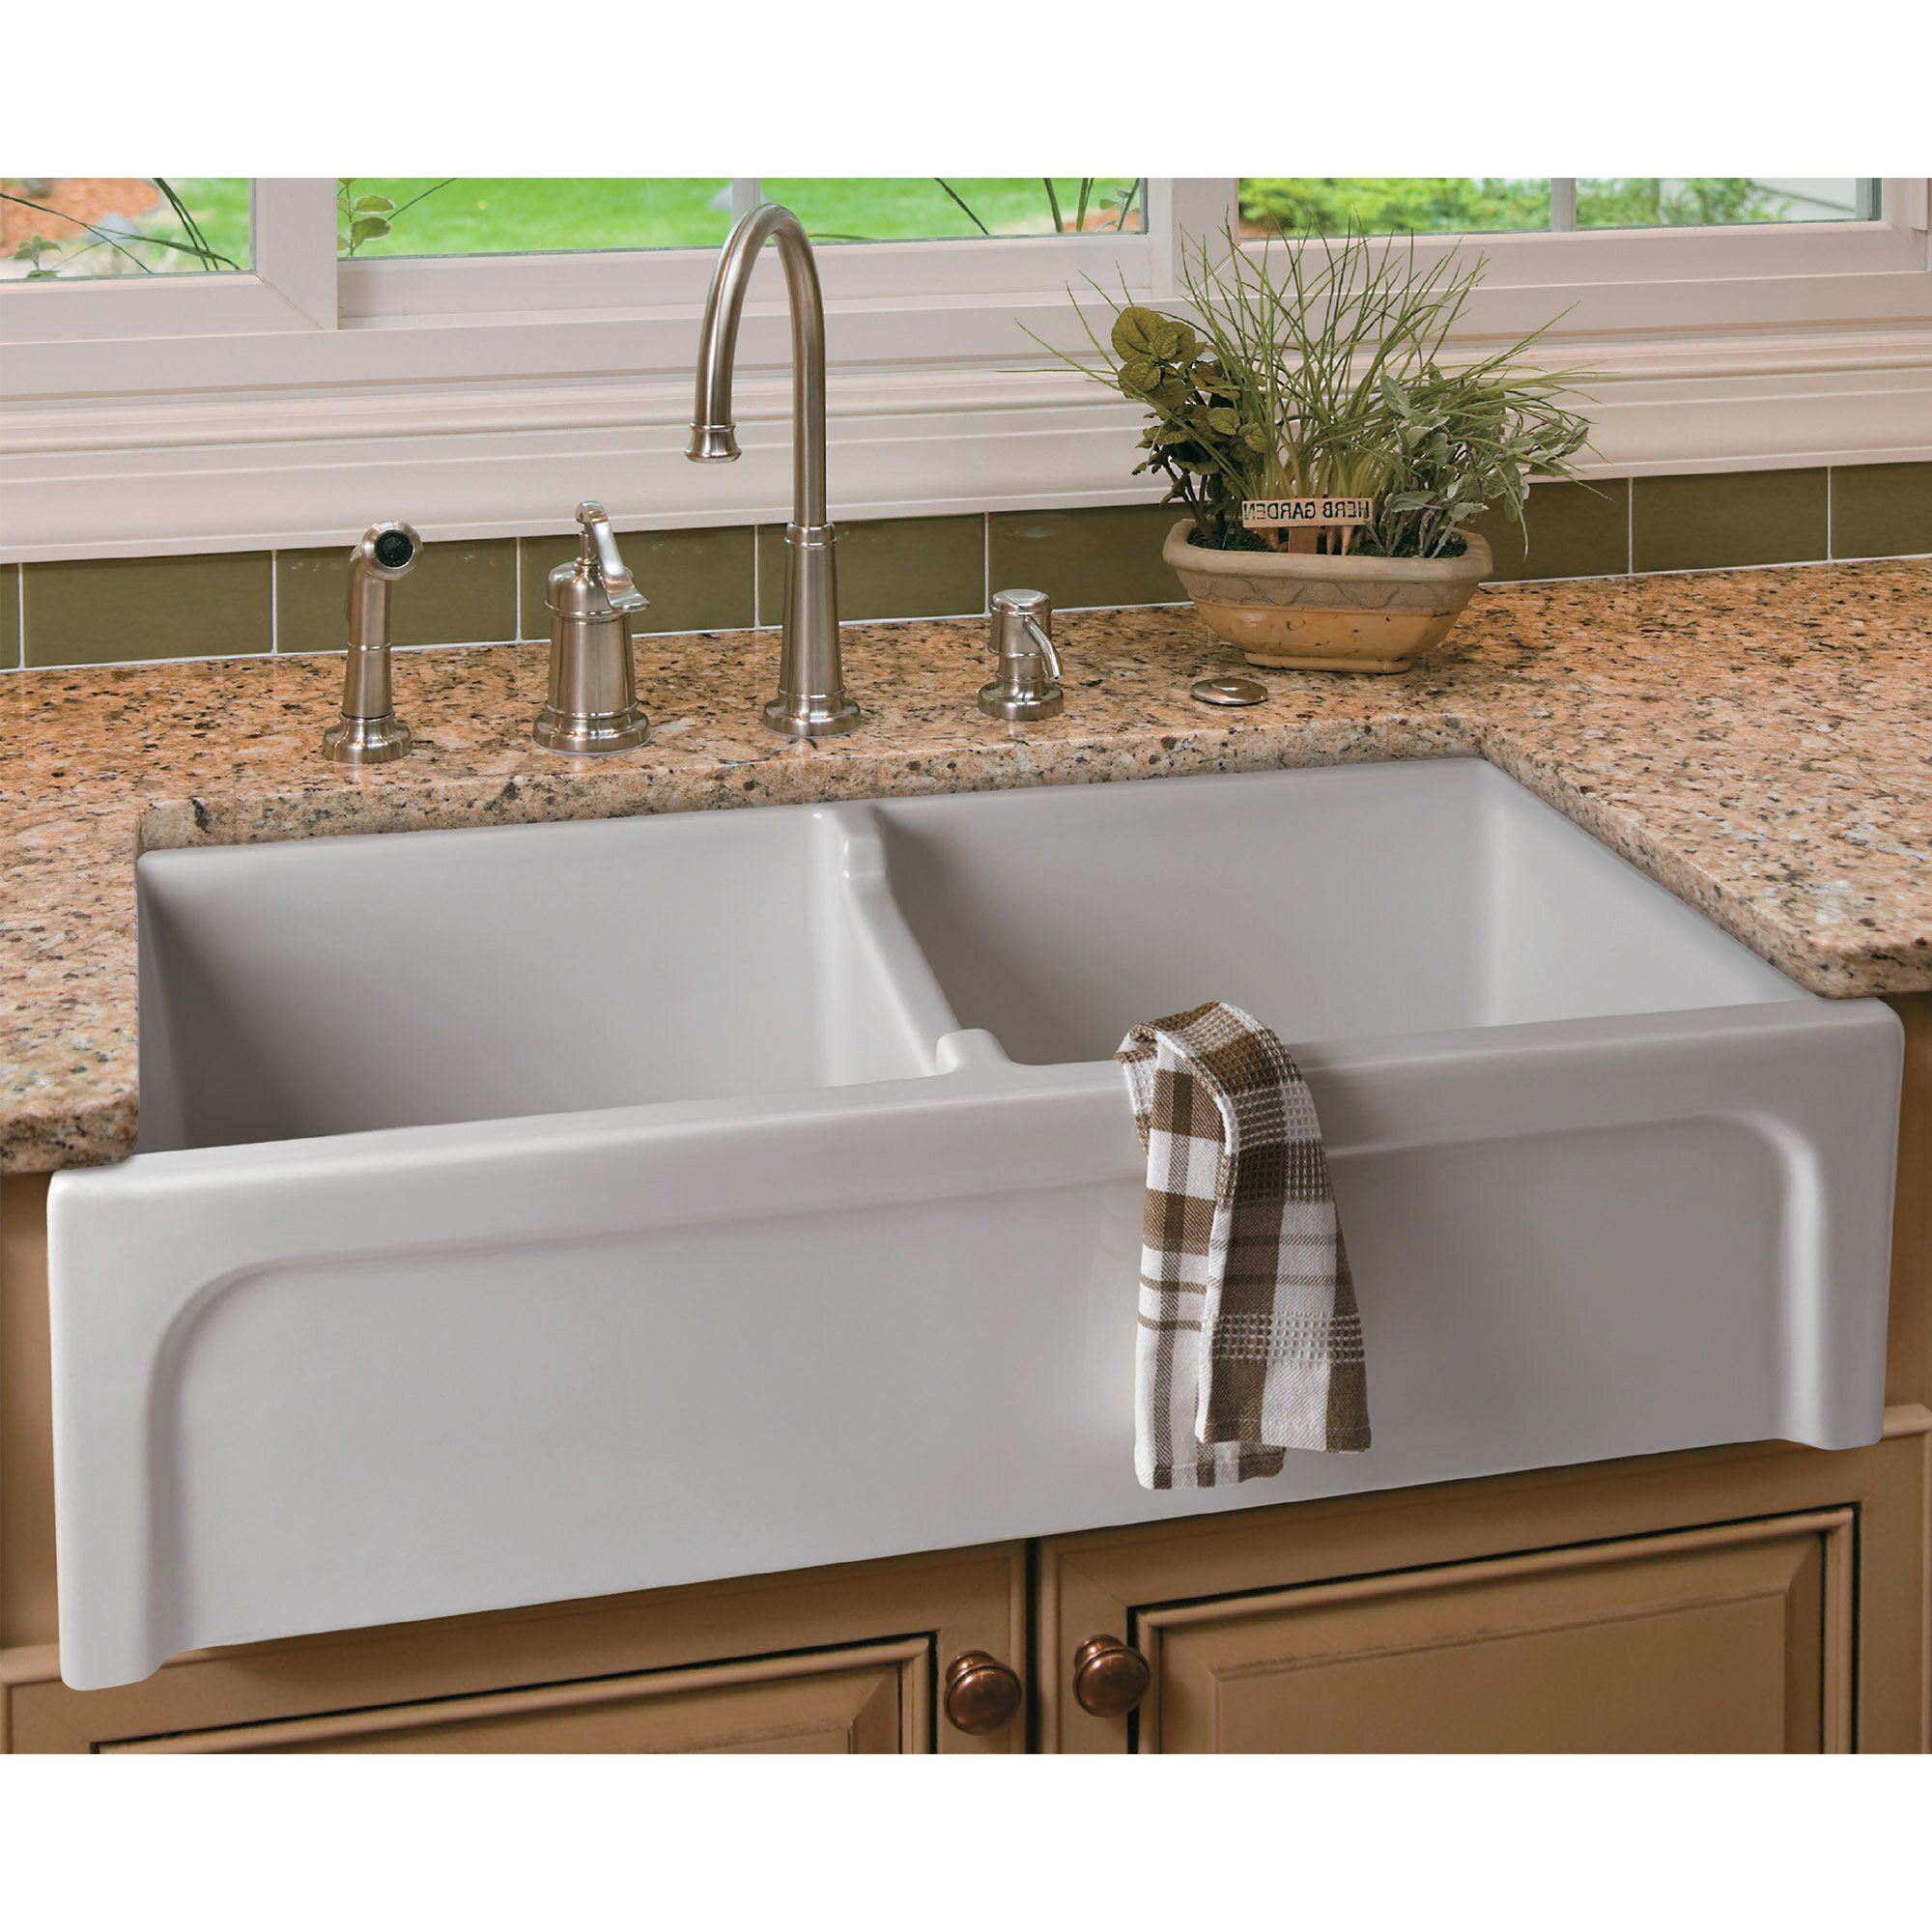 ... Thick Wall Fireclay Double Bowl Farmhouse Kitchen Sink by Alfi Brand